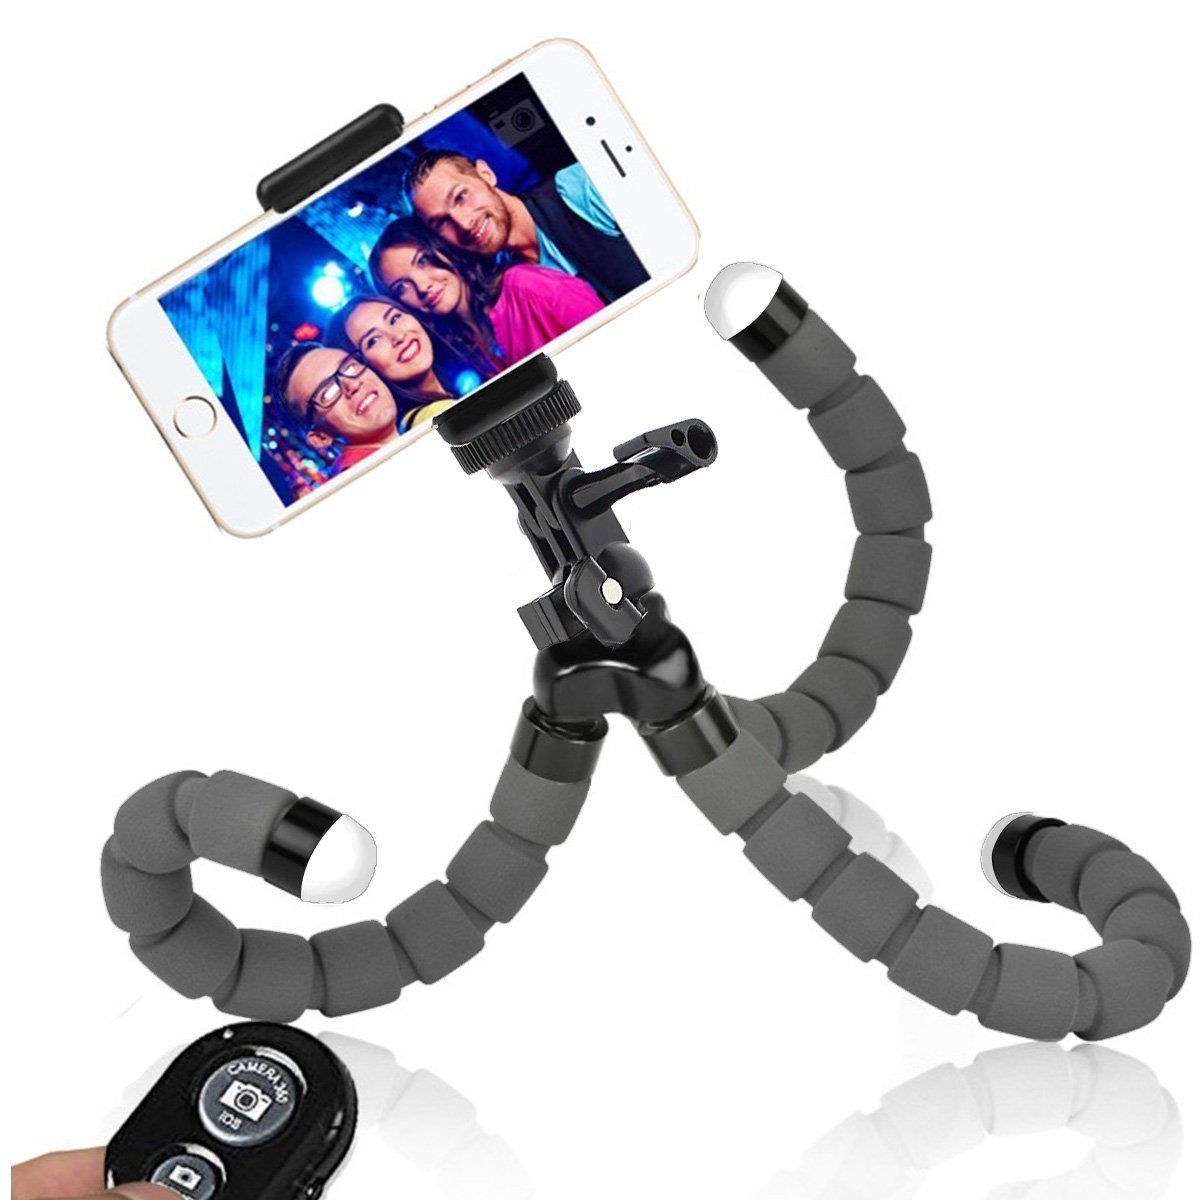 Phone Tripod iPhone Tripod WEMFG Flexible Tripod for iPhone Camera Stand Holder with Wireless Remote for iPhone Android Phone, Camera, Sports Camera and Gopro[Upgraded Version 2]